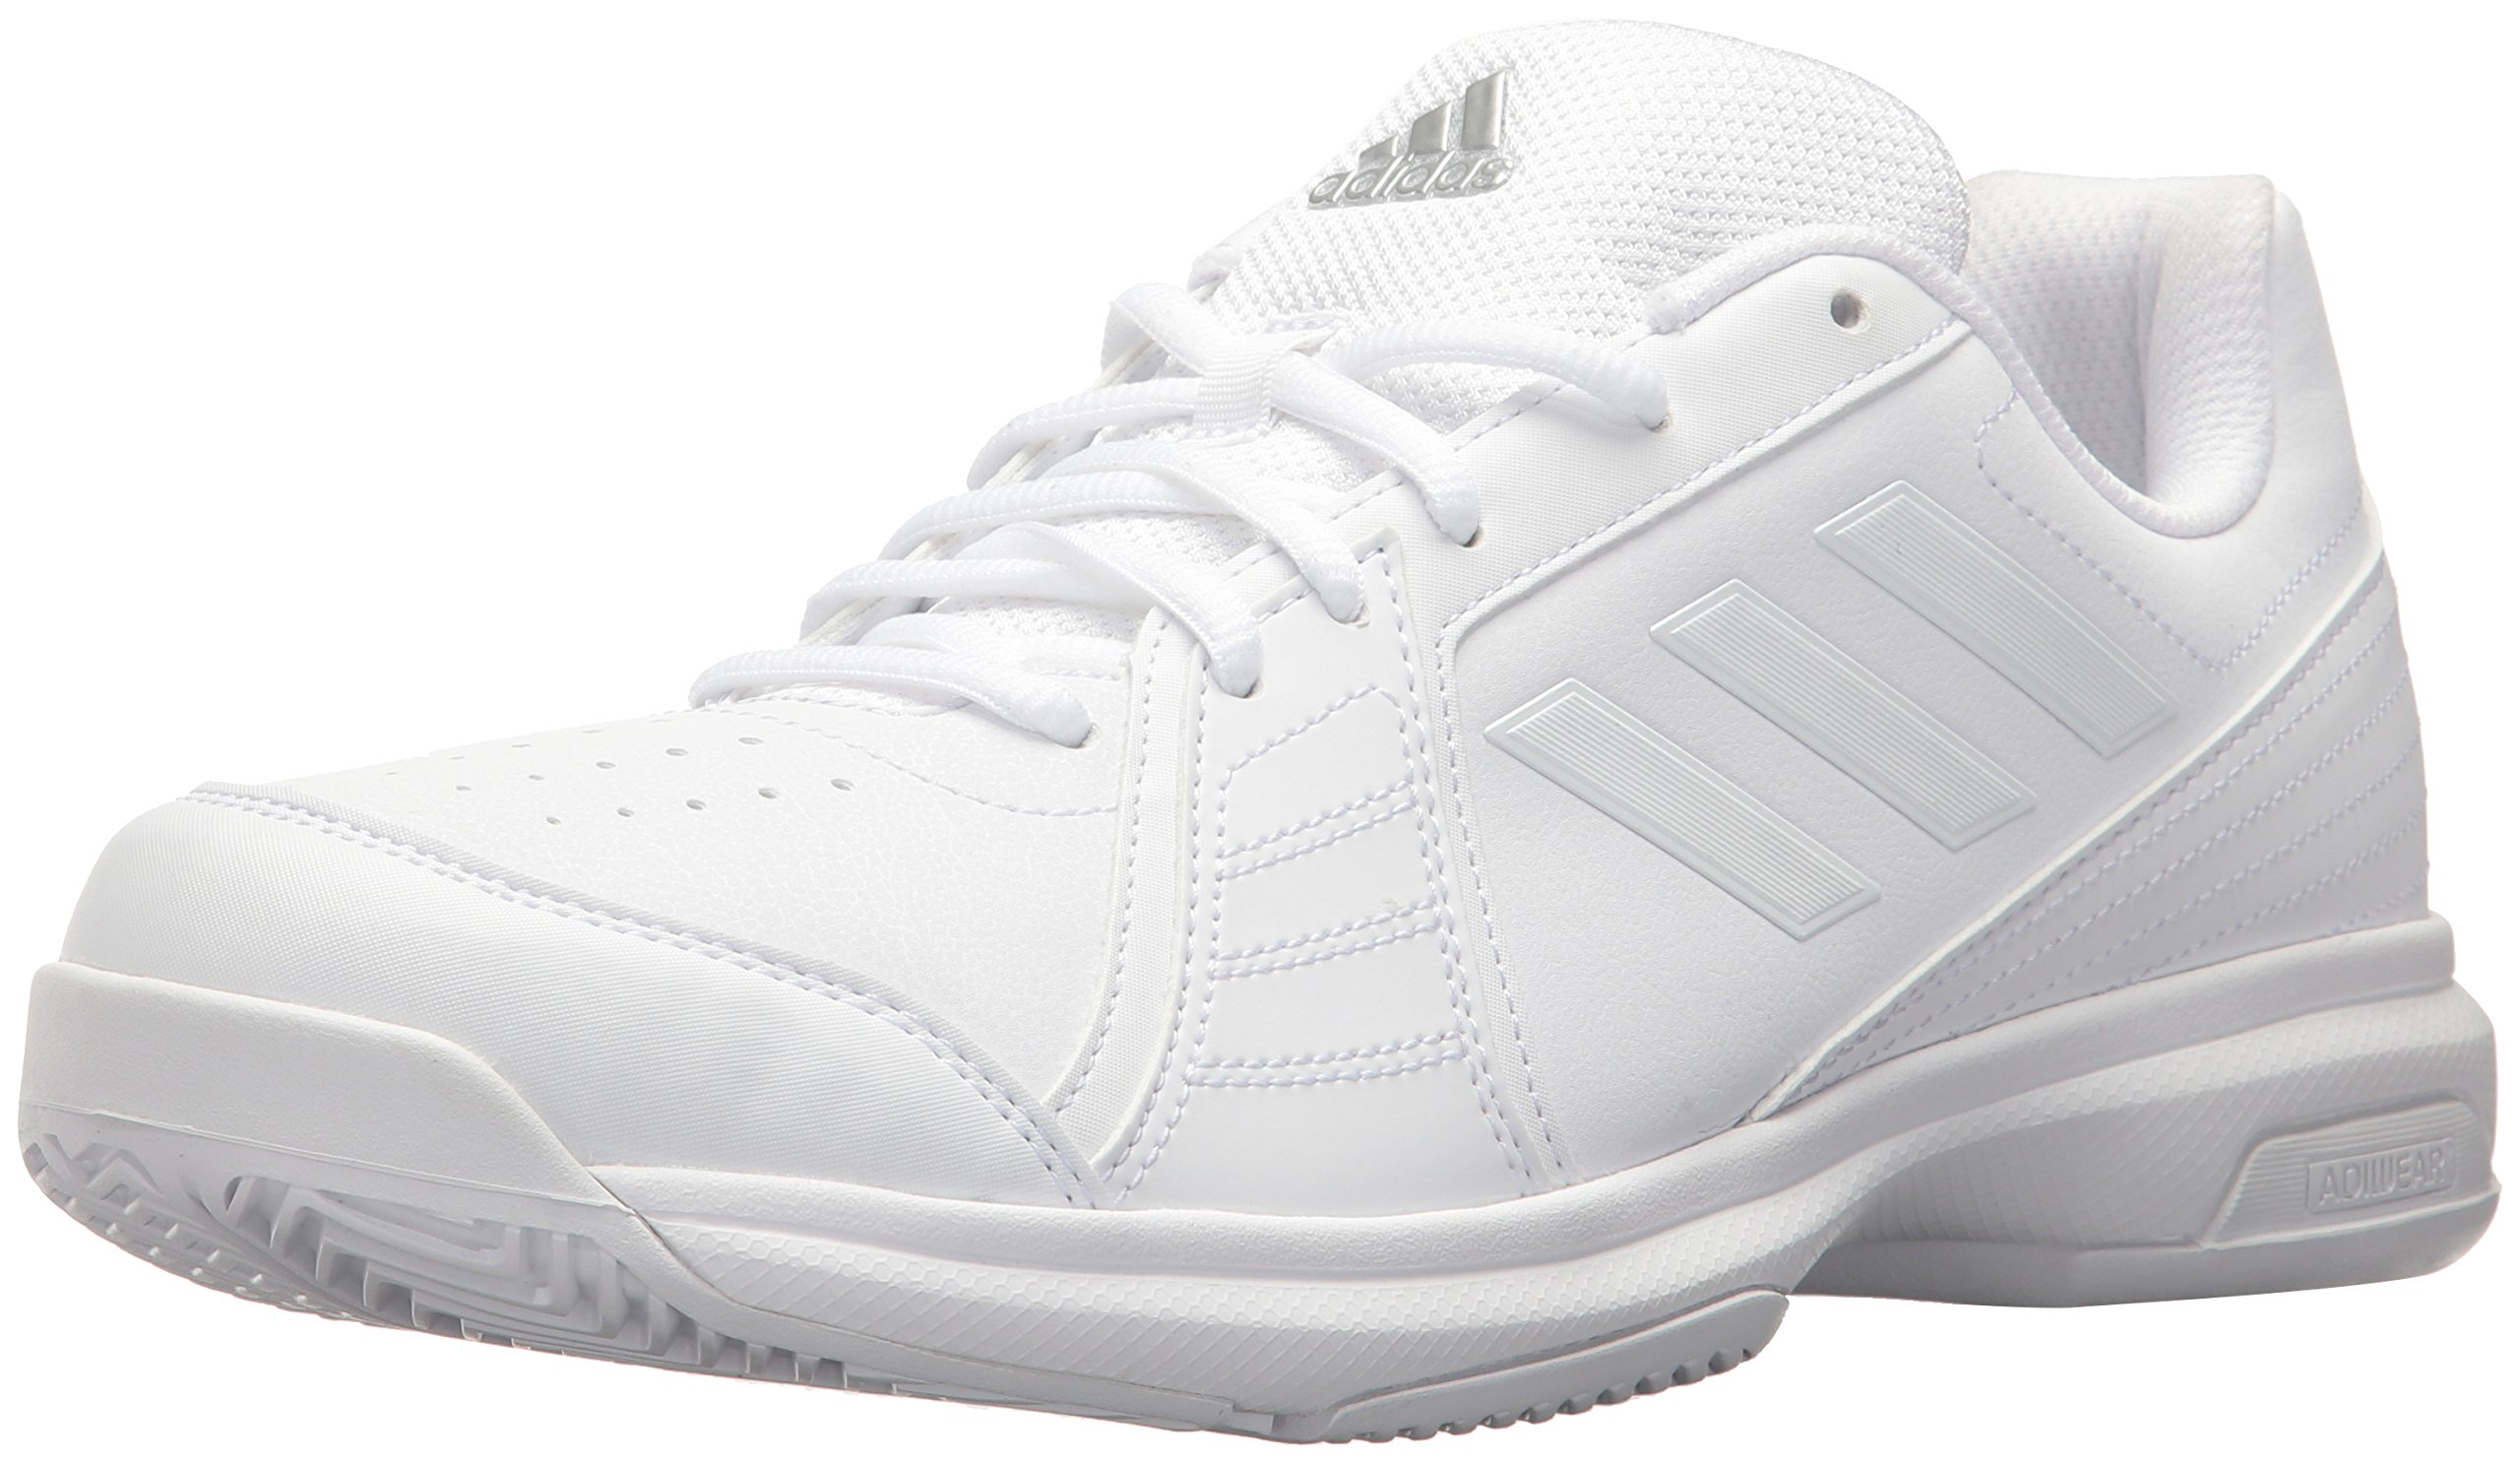 adidas Men's Approach Tennis Shoe, White/White/White, 6.5 M US by adidas